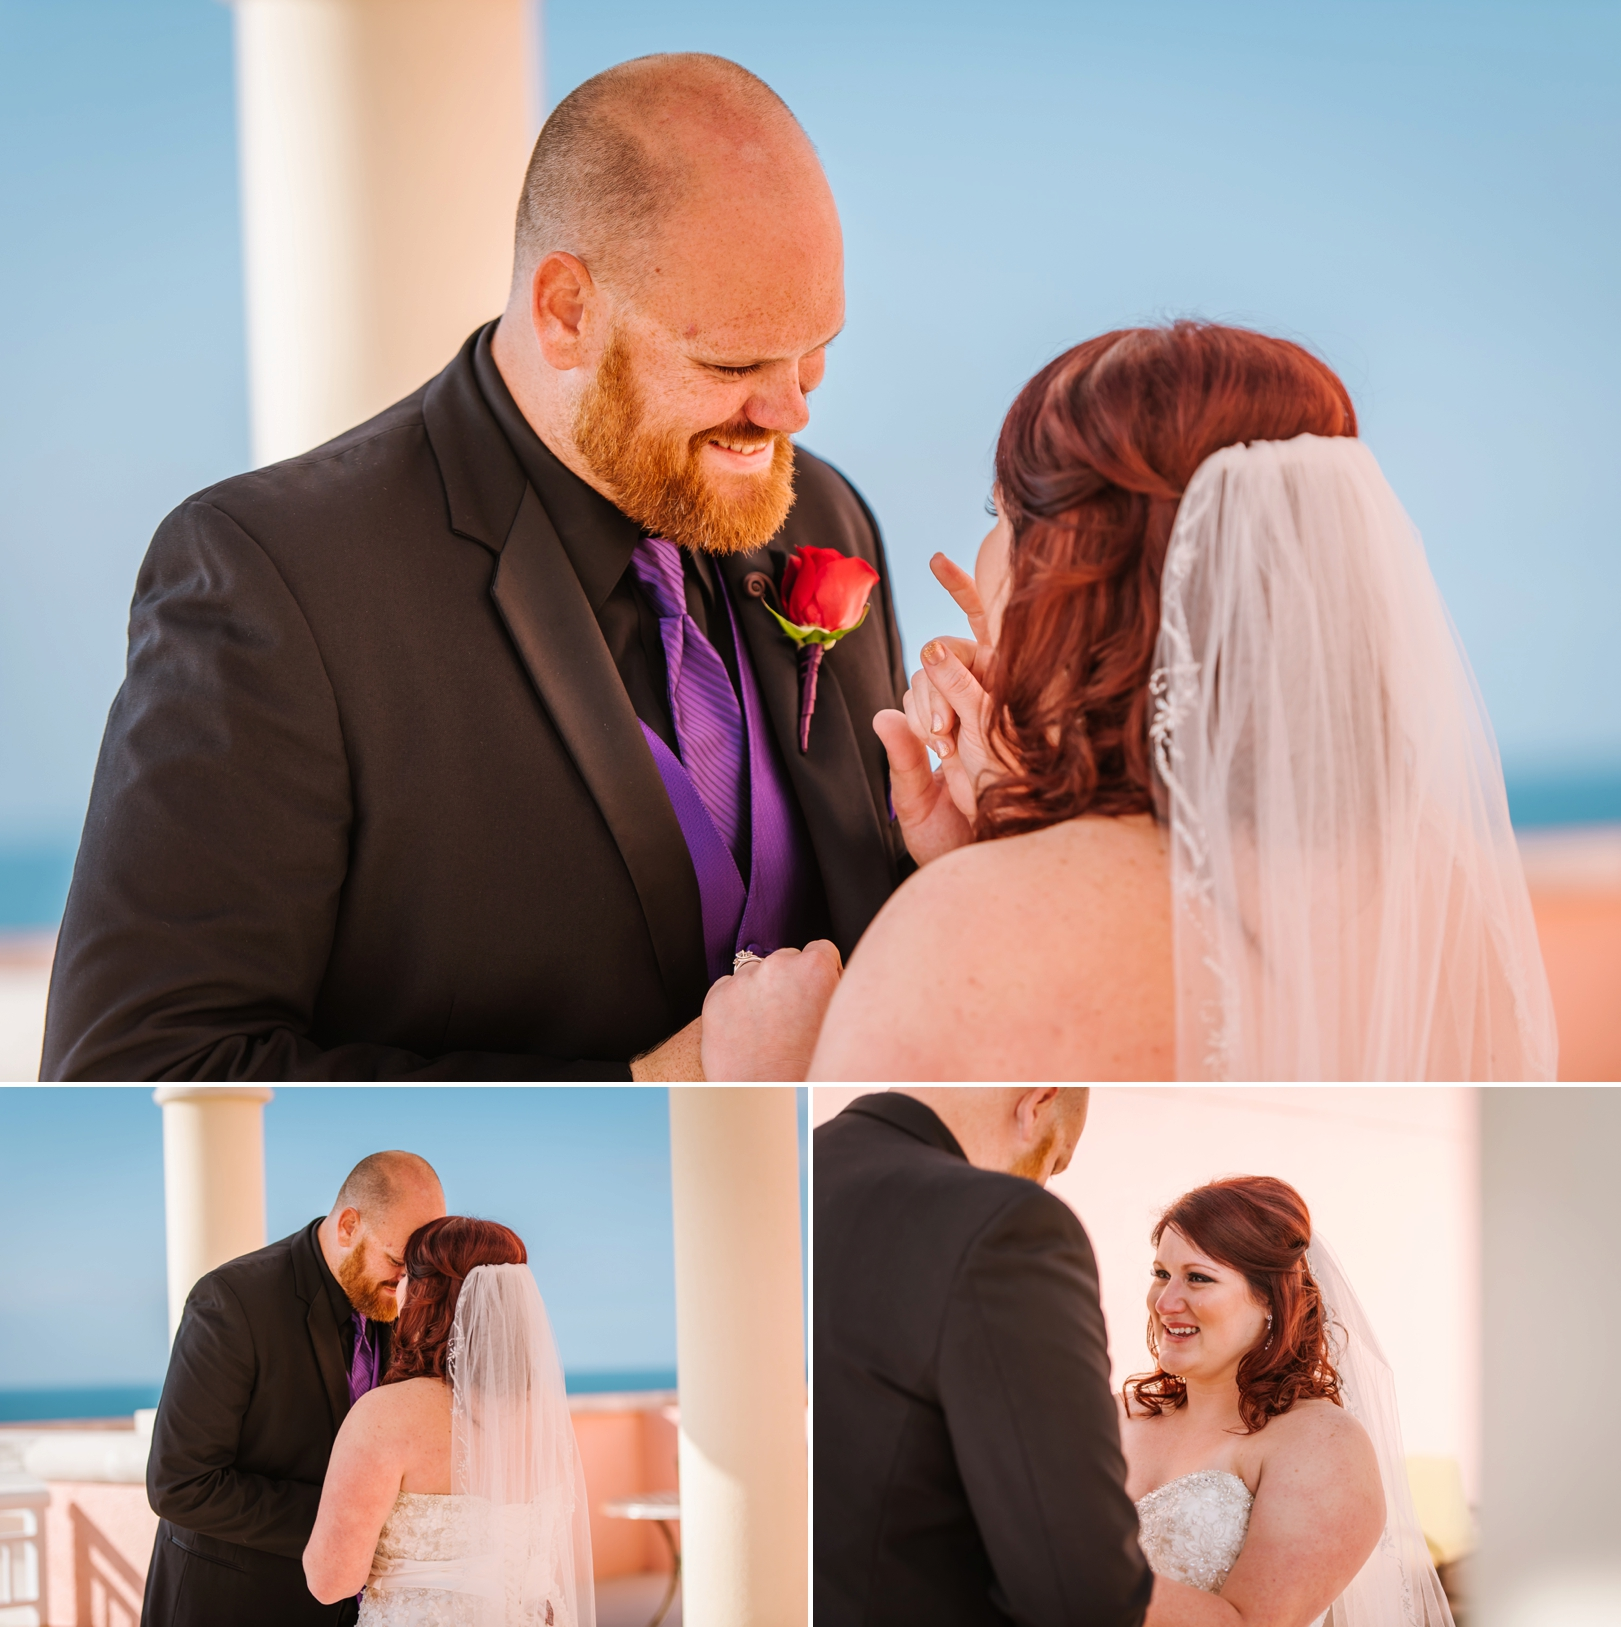 clearwater-beach-hyatt-masquerade-ballroom-themed-wedding-photograpy_0010.jpg